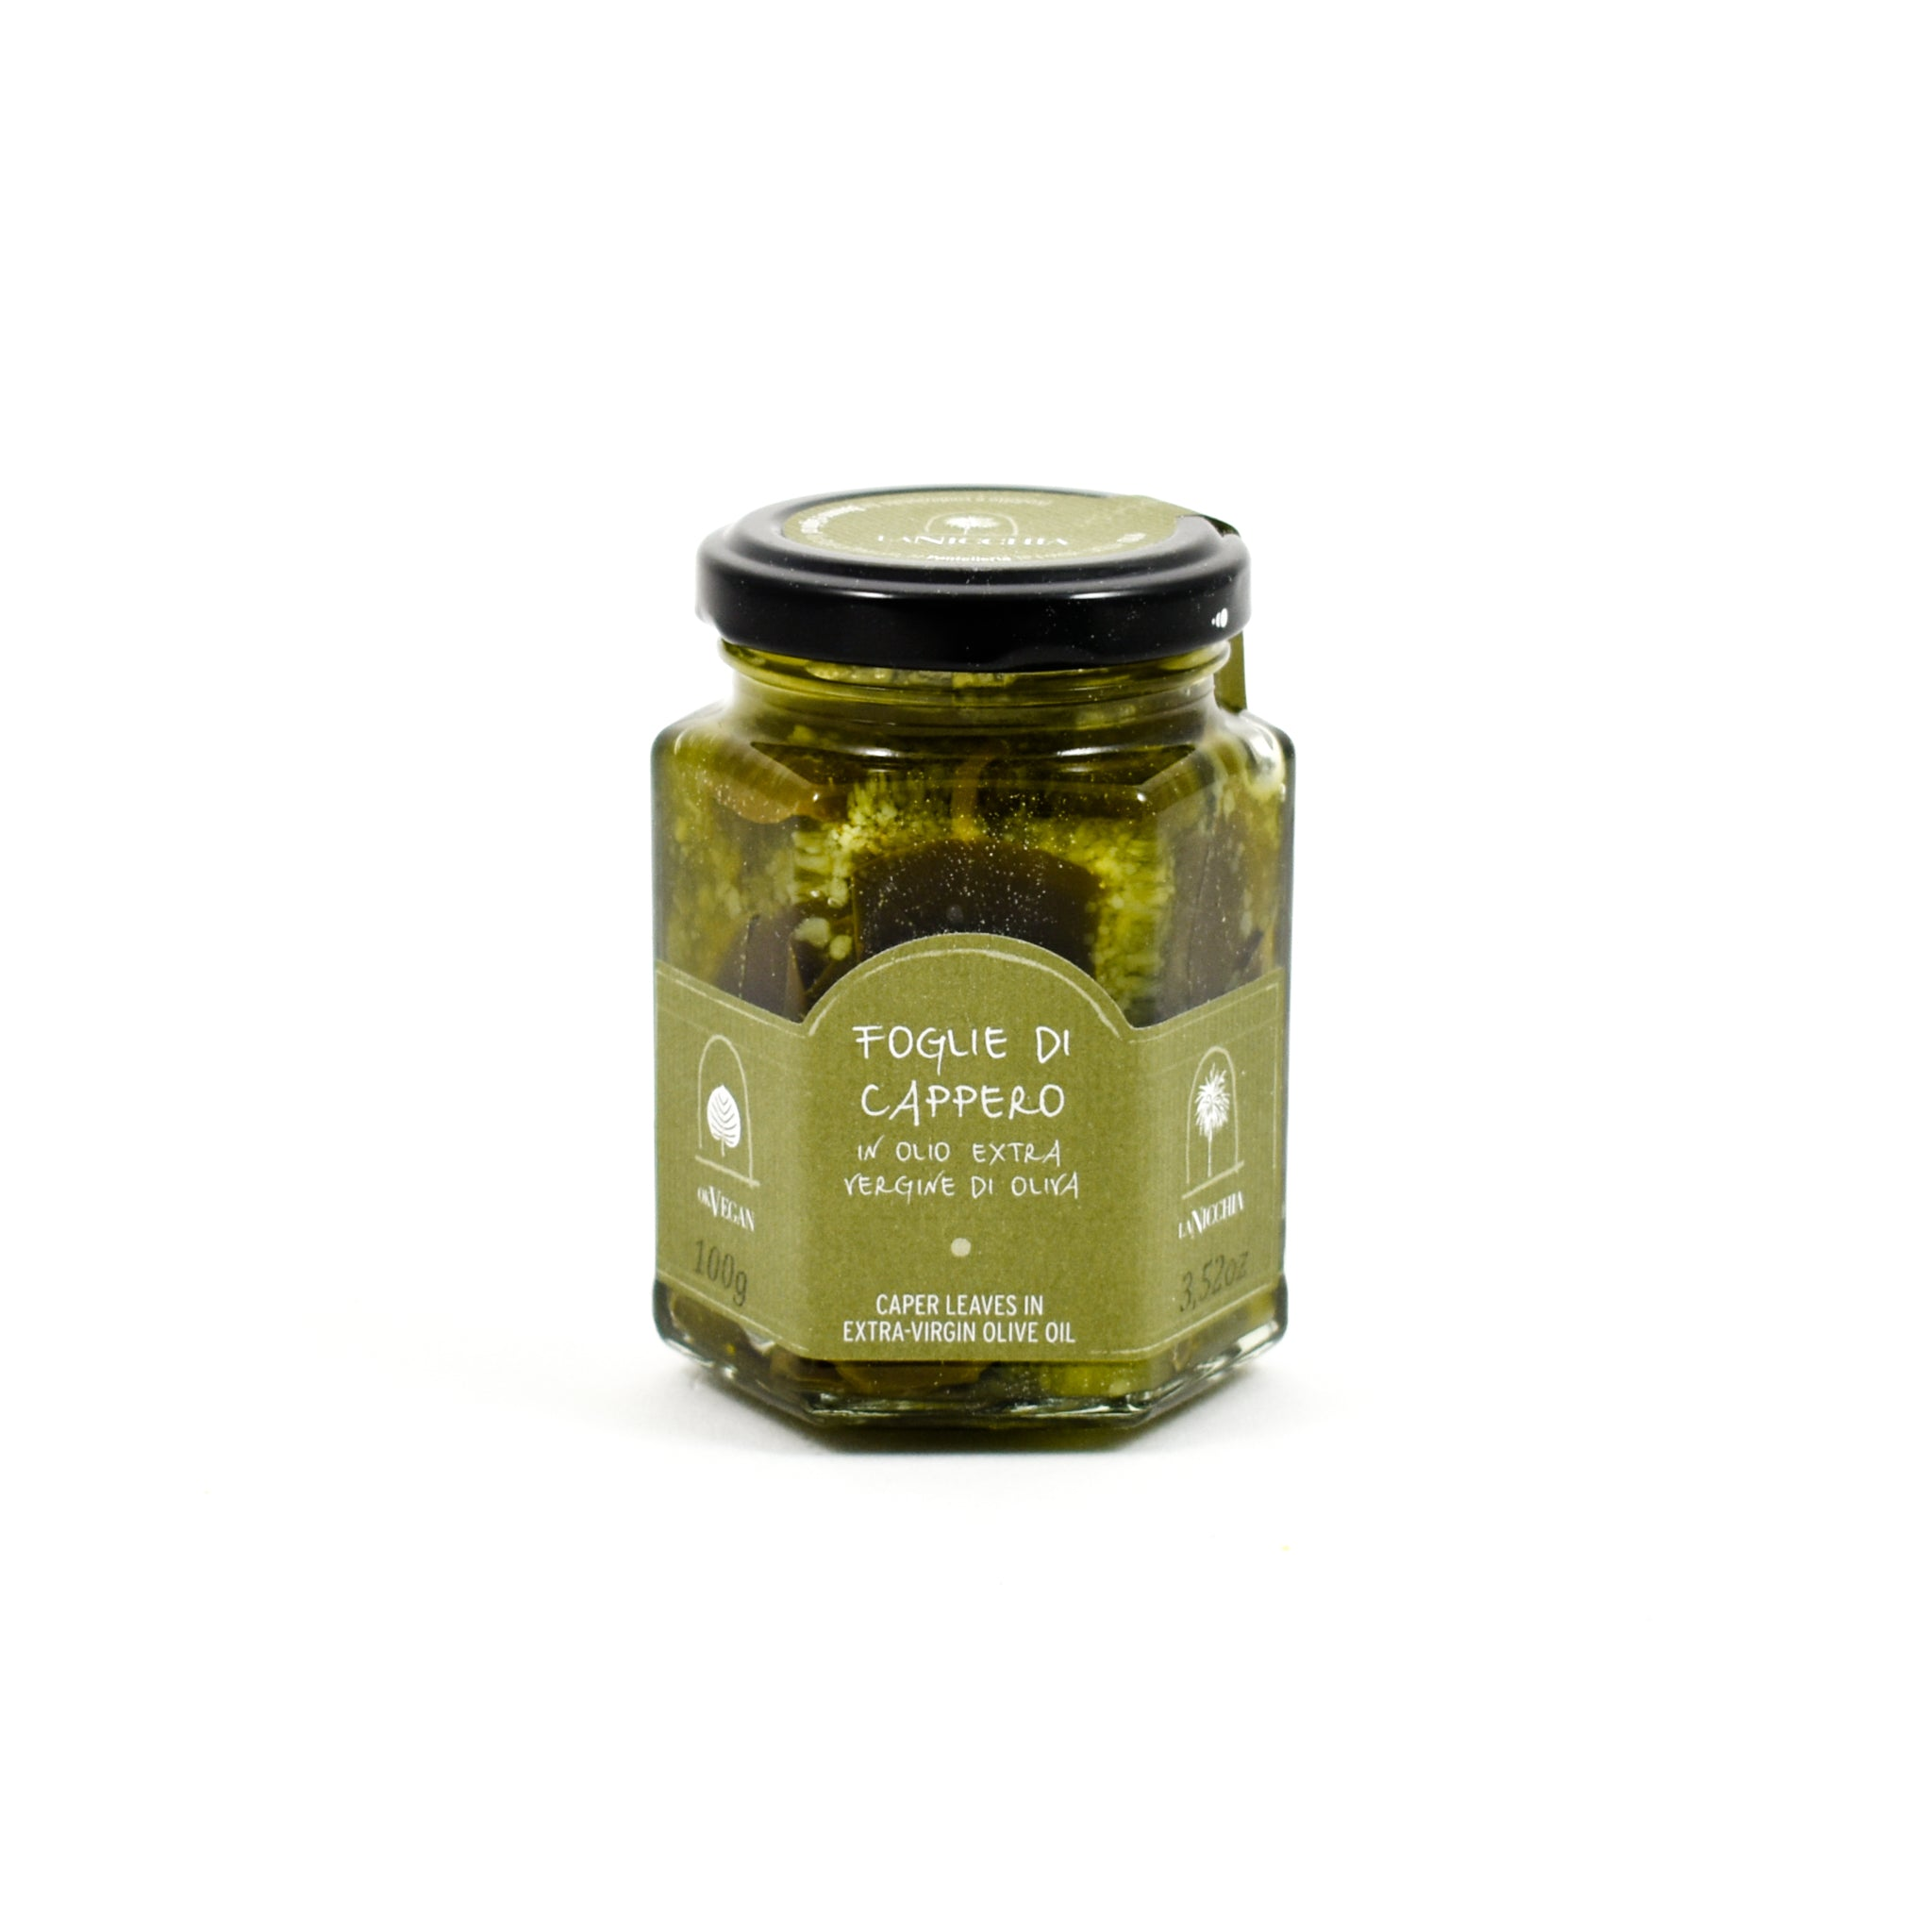 La Nicchia Caper Leaves 100g Ingredients Pickled & Preserved Vegetables Italian Food